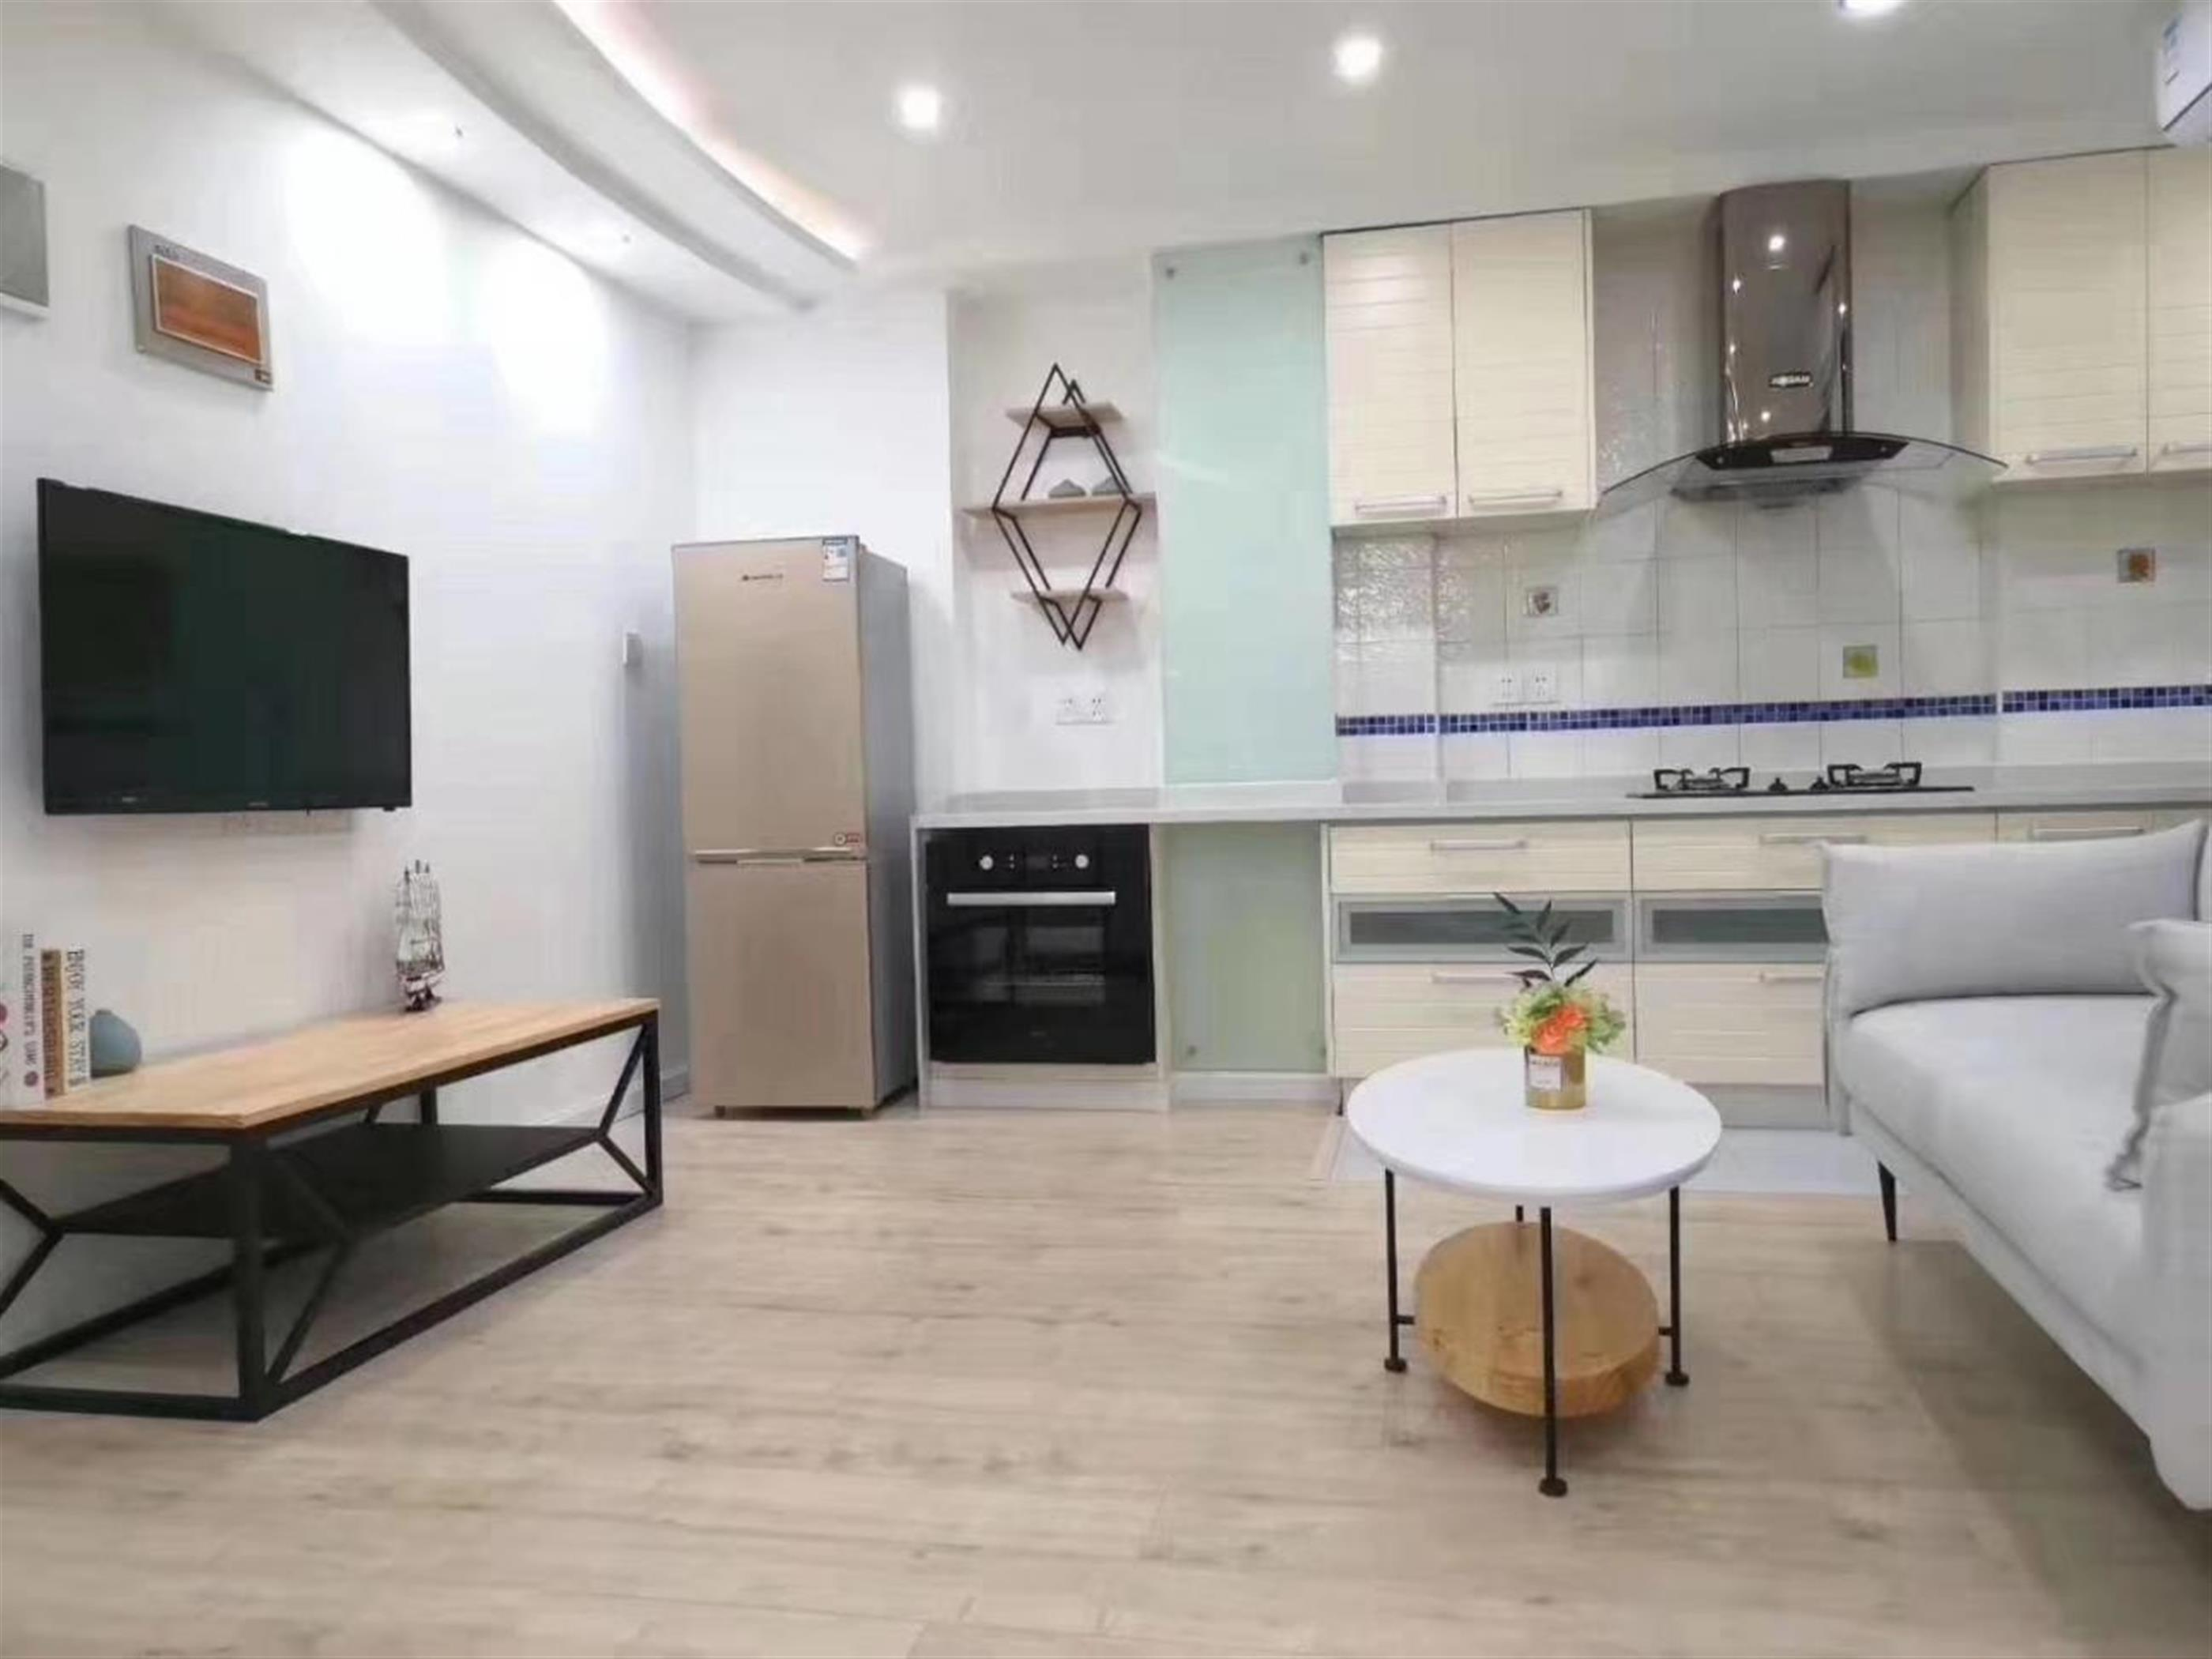 Sleek Modern 1BR Apartment Nr LN 3/4 for Rent in Shanghai